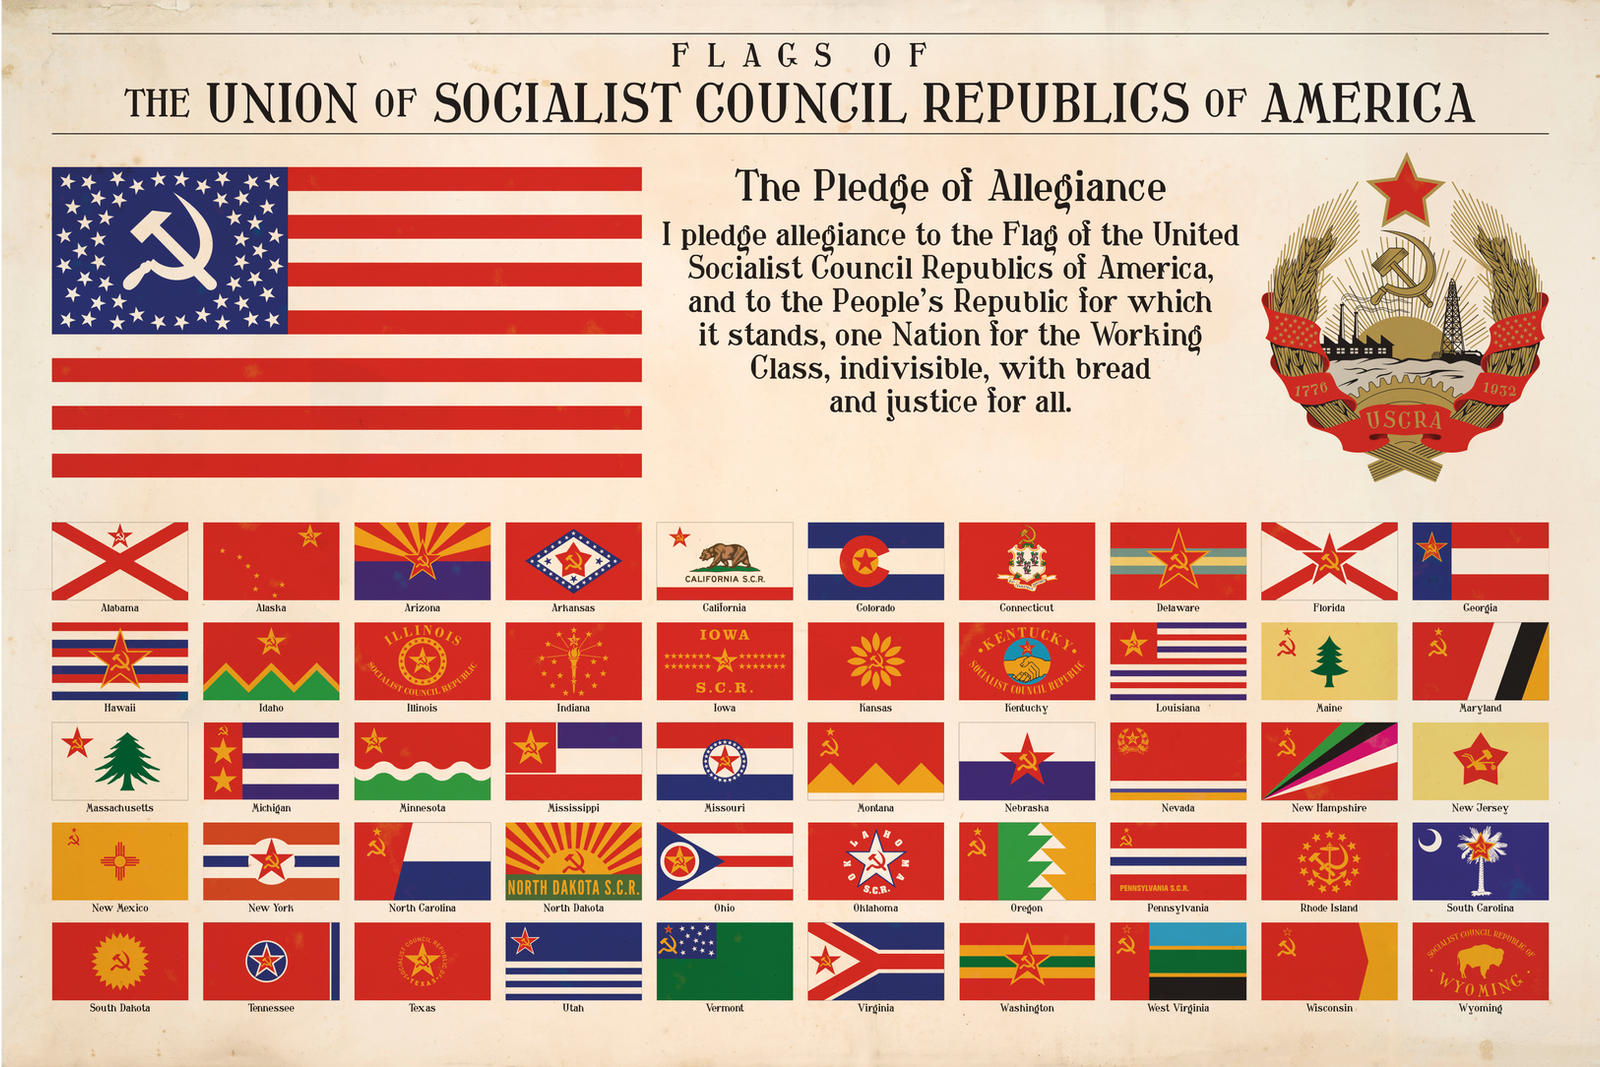 national_and_state_flags_of_communist_america_by_regicollis_d7y2g4y-fullview.jpg